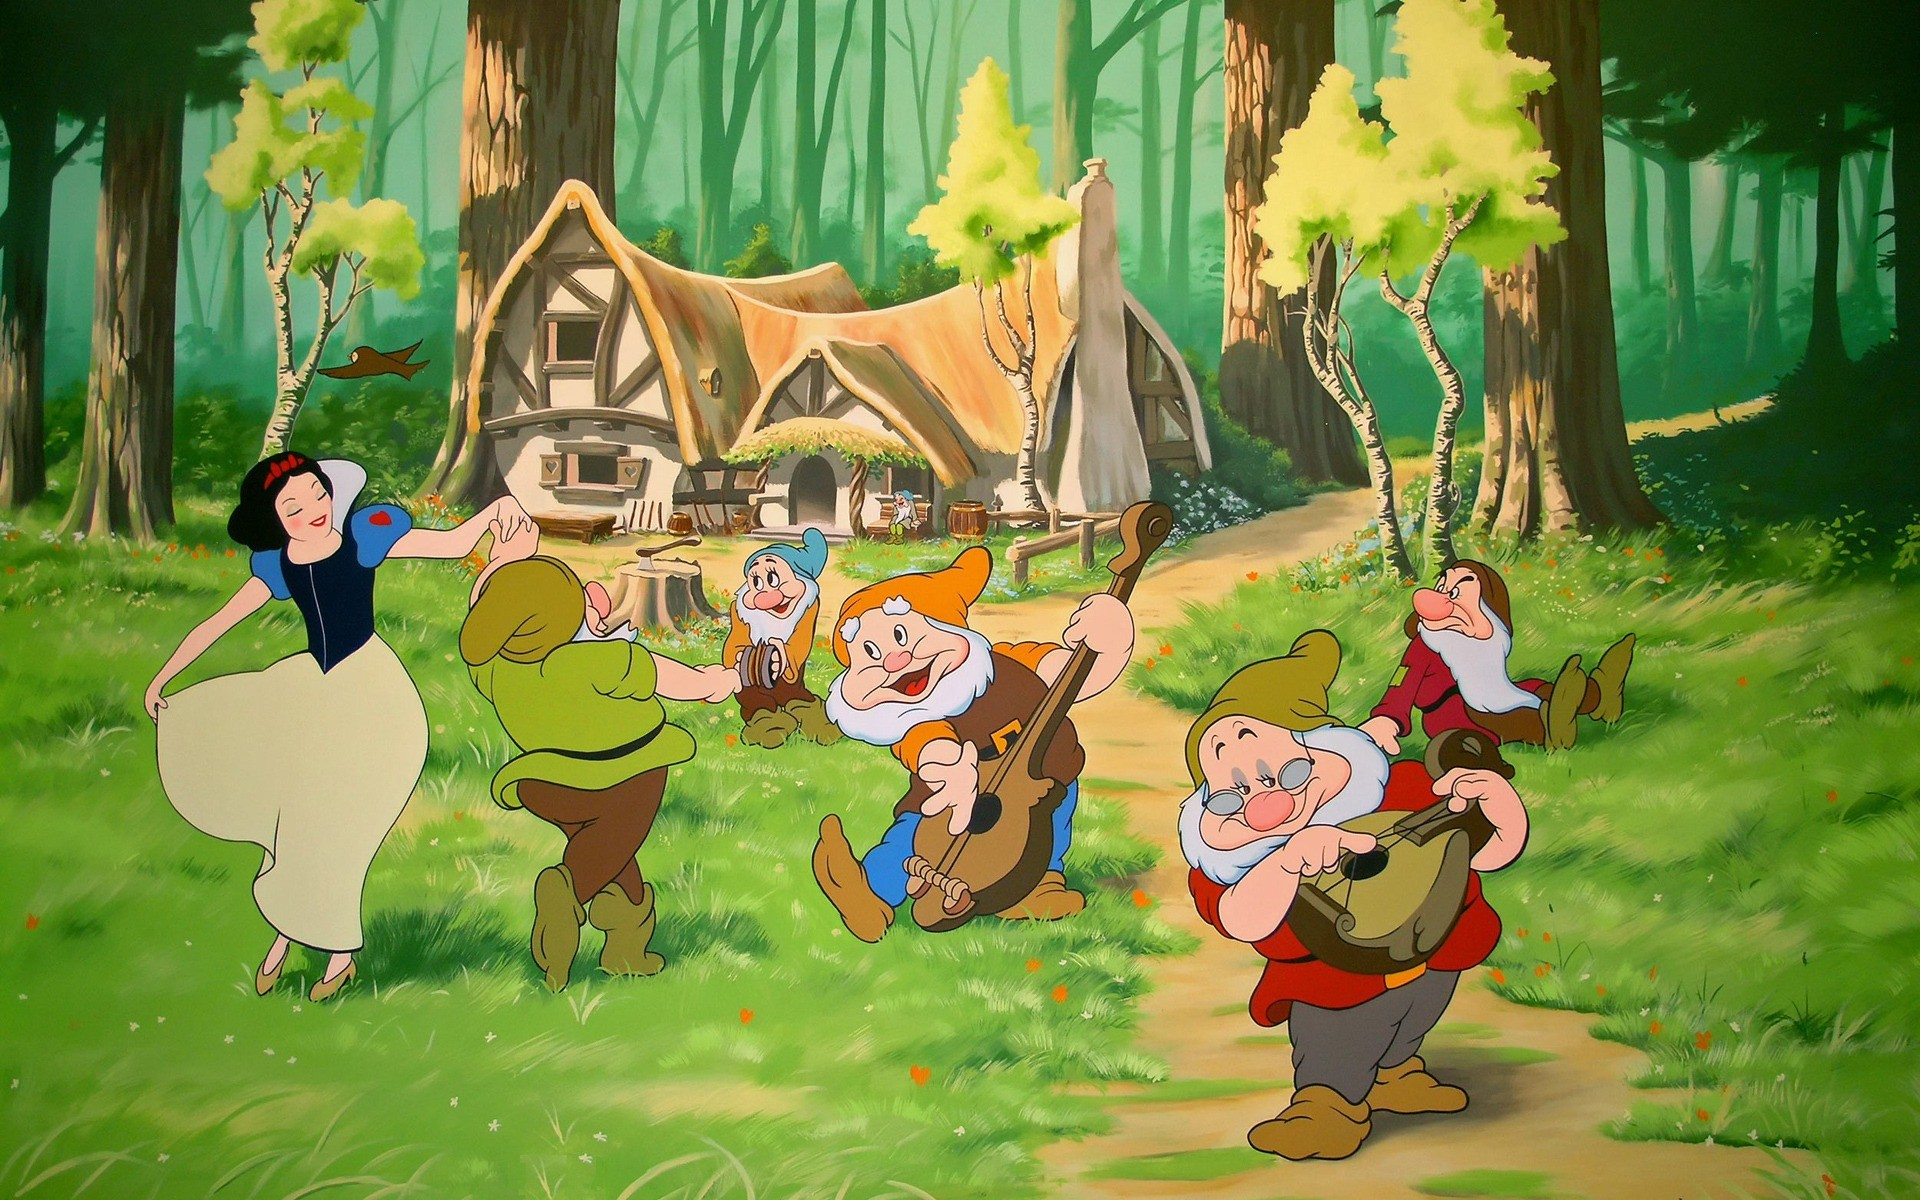 Res: 1920x1200, Snow White and the Seven Dwarfs Wallpaper Cartoons Anime Animated Wallpapers